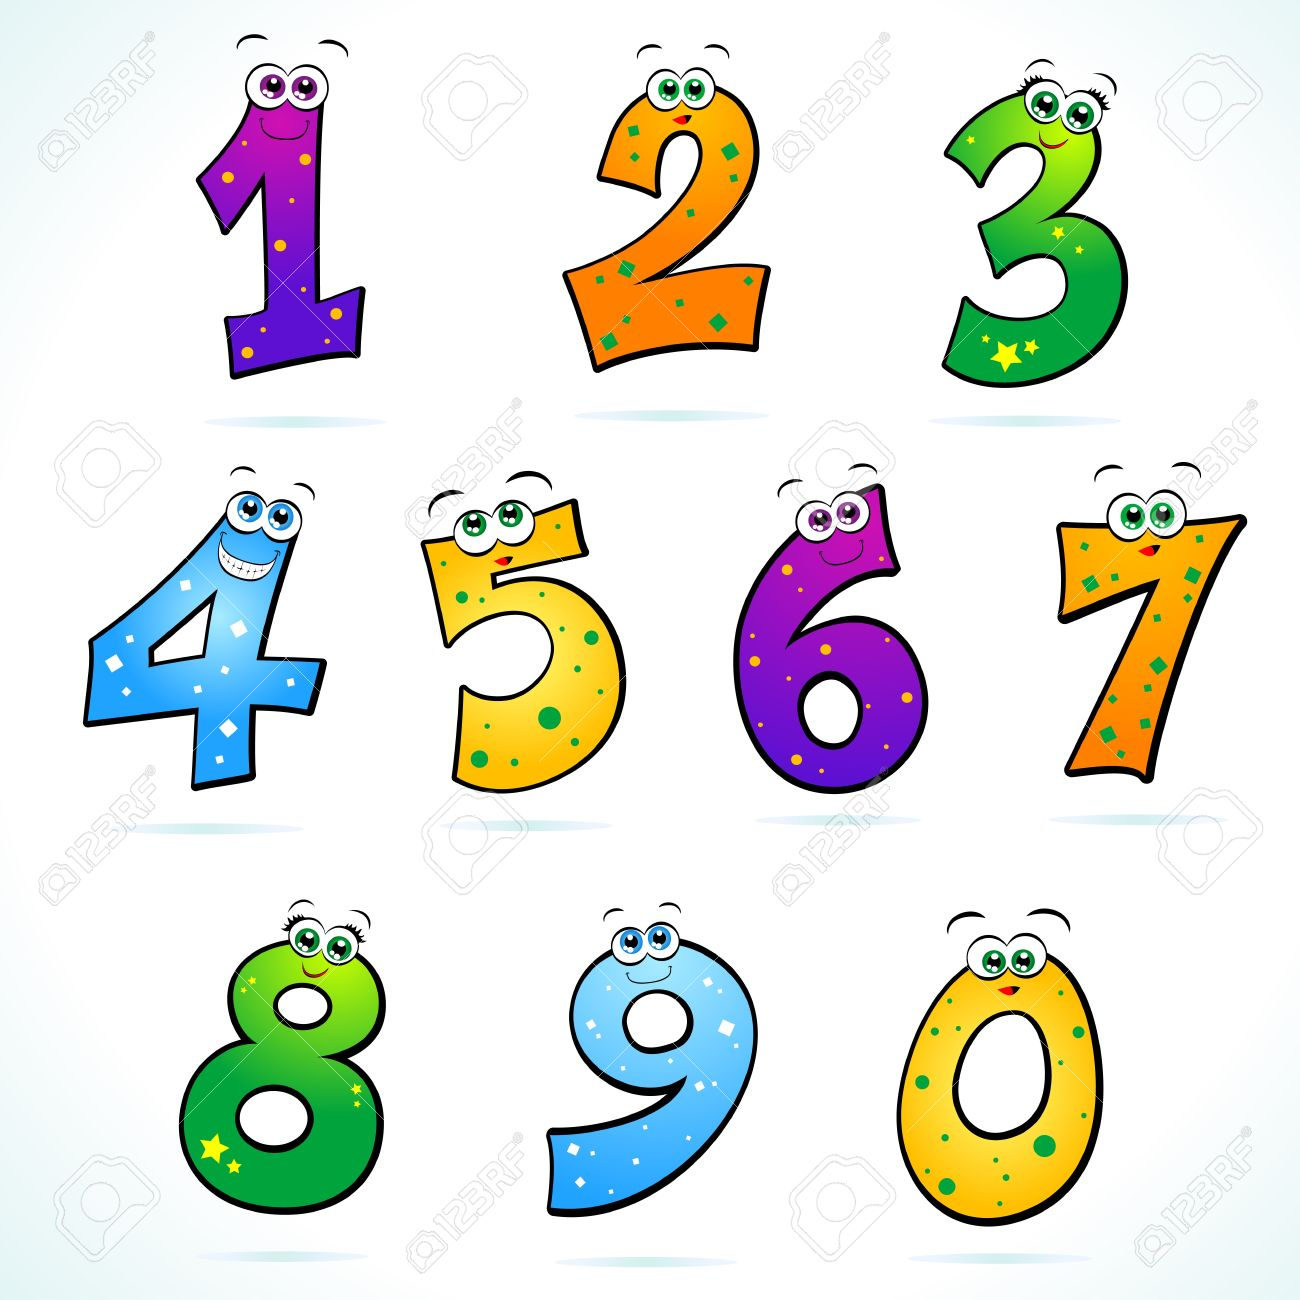 Cartoon numbers clipart svg royalty free stock Cartoon Numbers Clipart | Free download best Cartoon Numbers Clipart ... svg royalty free stock